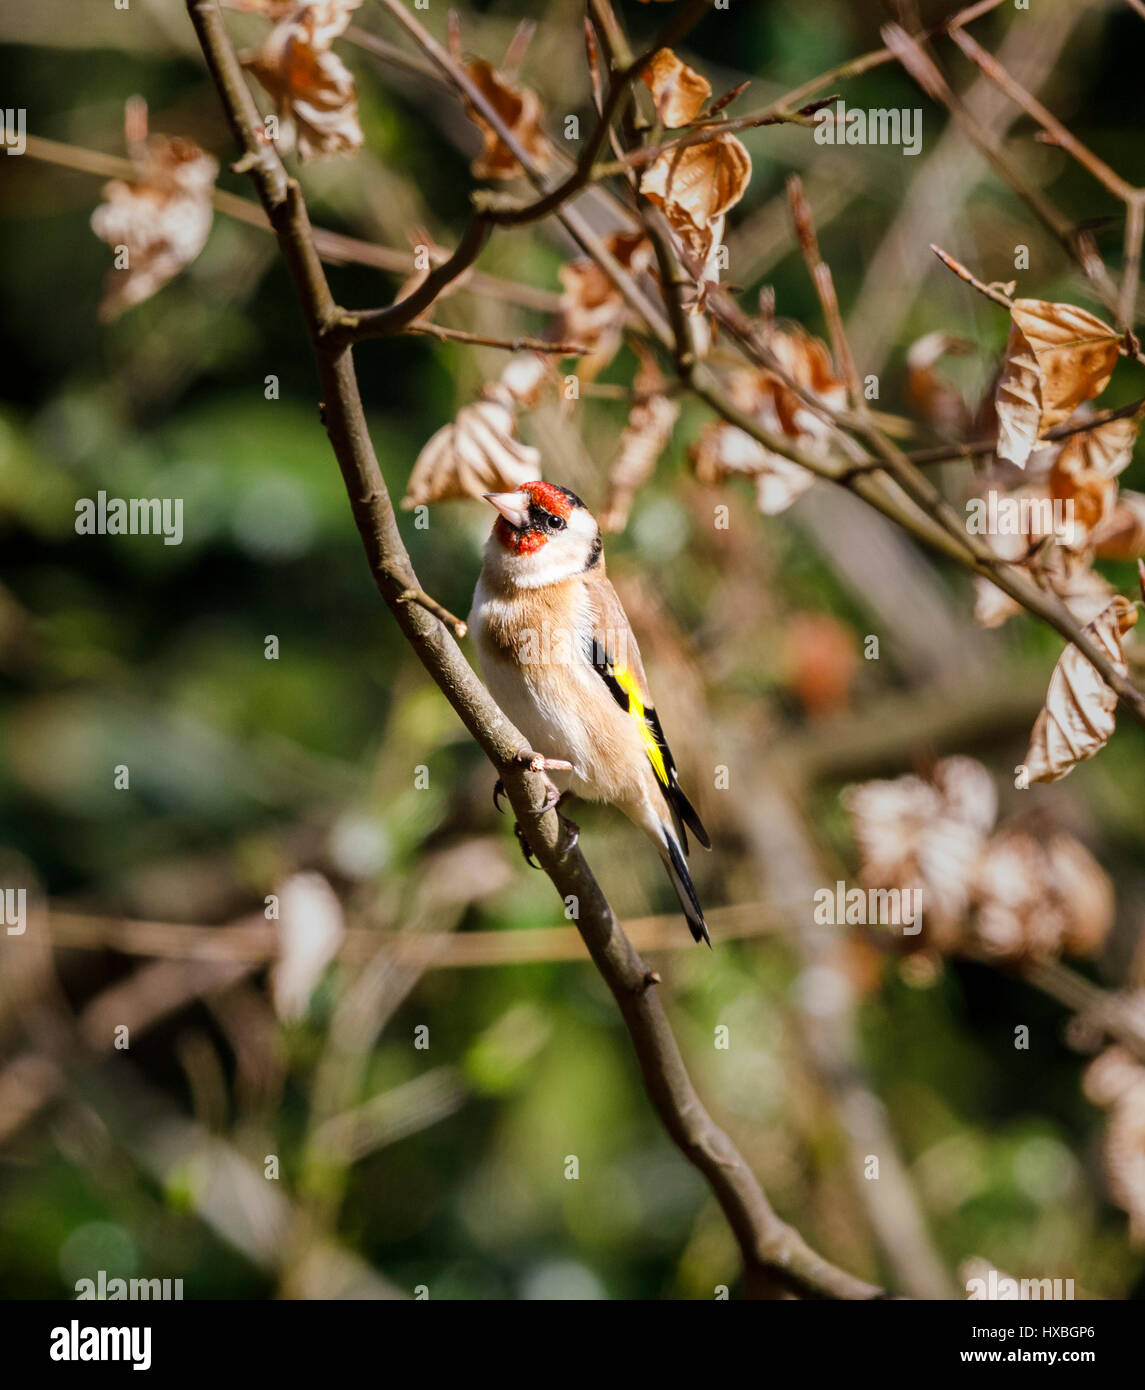 Colourful Carduelis carduelis, European goldfinch, perching on a branch of a beech tree in spring, Surrey, south Stock Photo